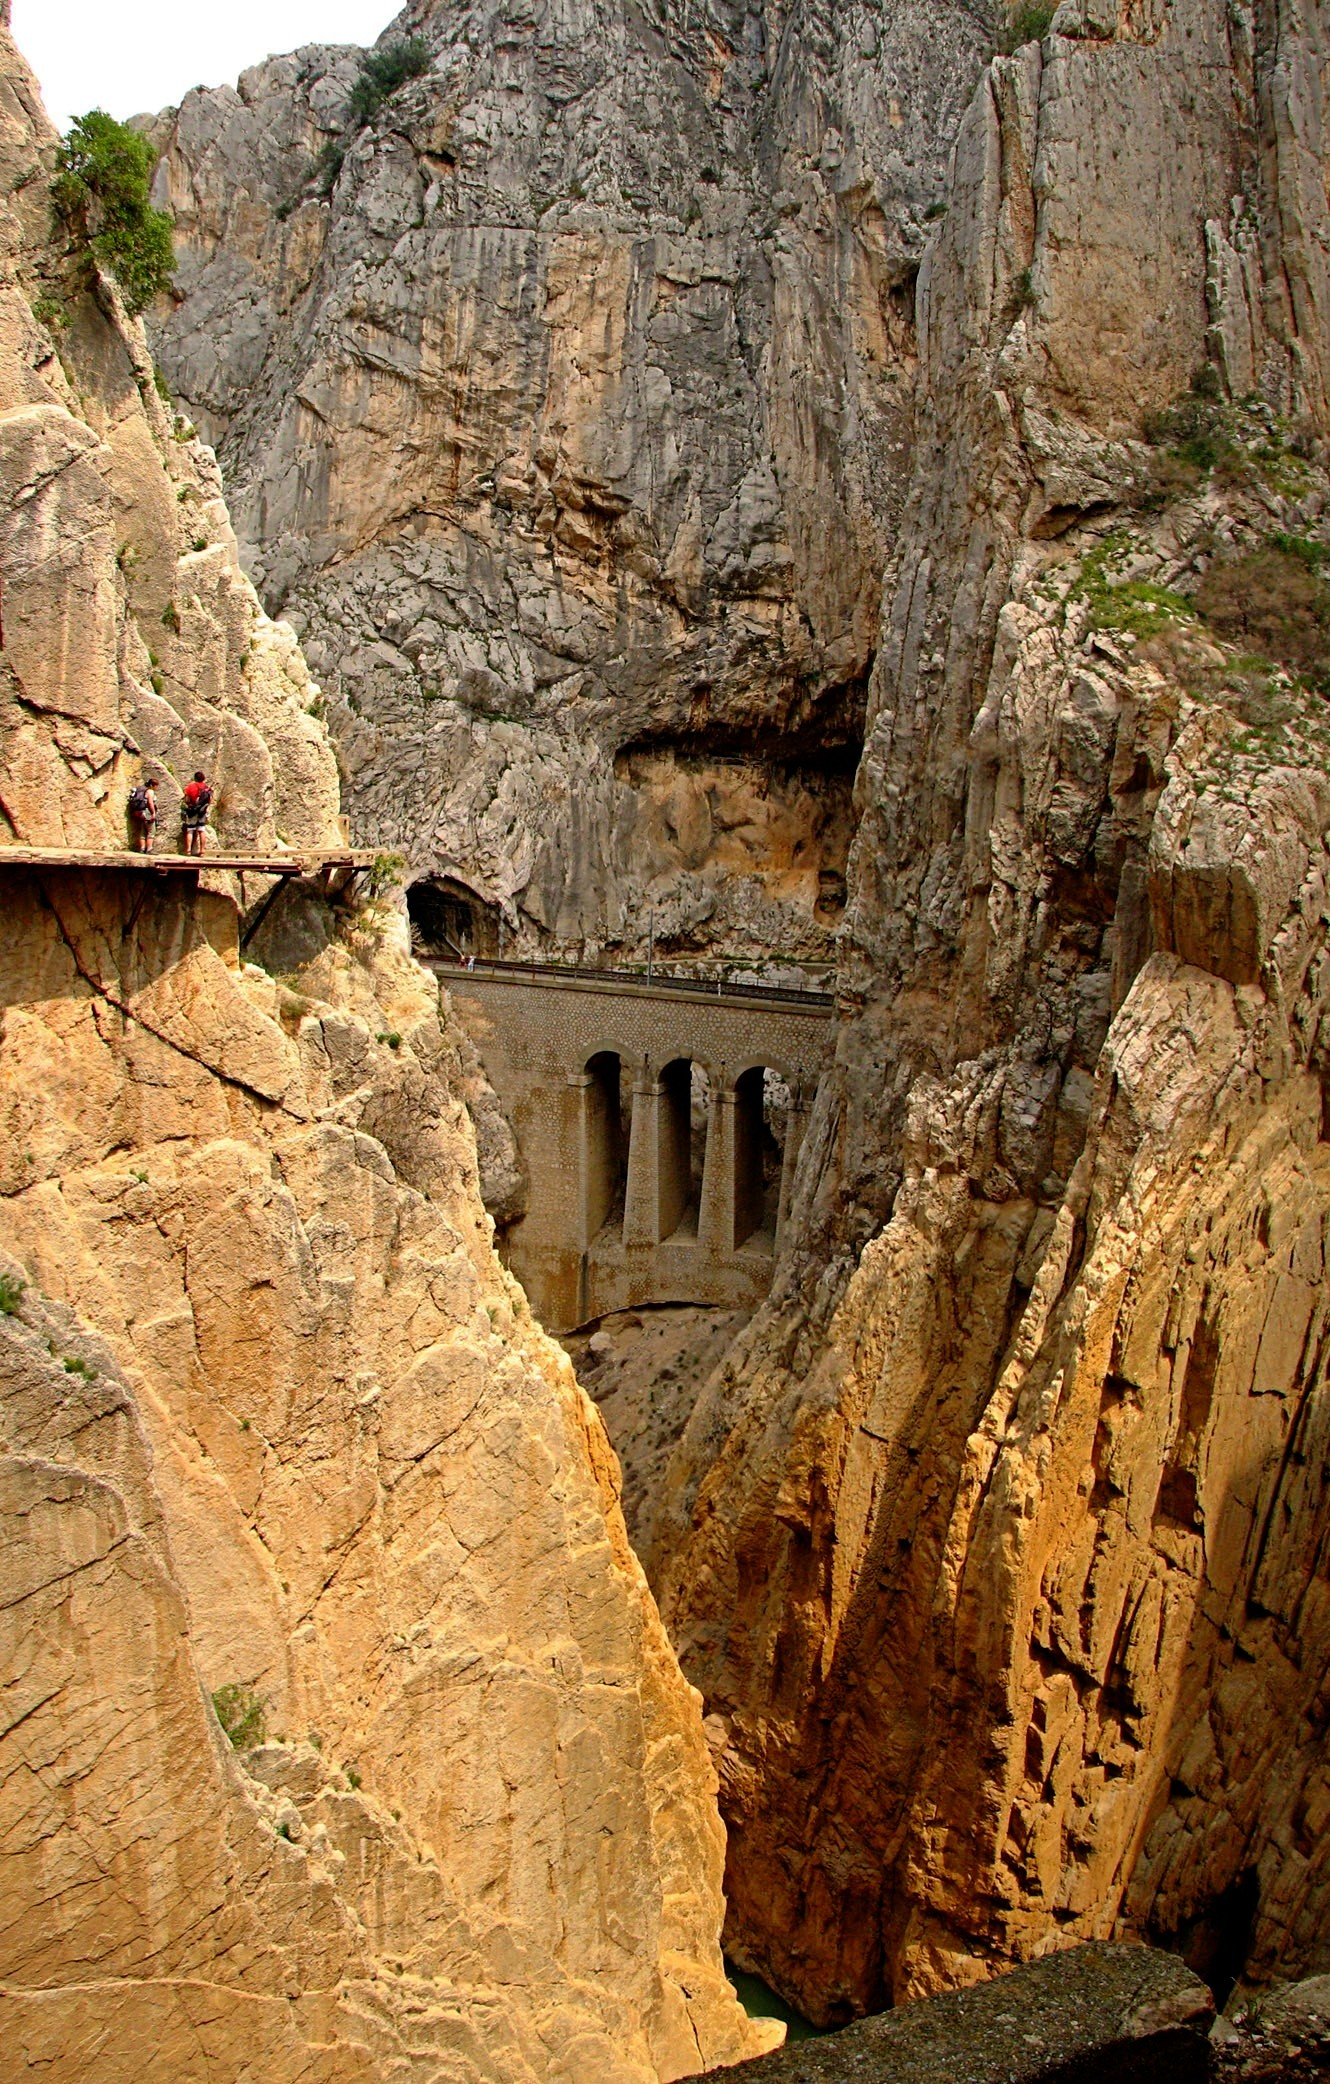 http://upload.wikimedia.org/wikipedia/commons/2/20/Caminito_del_Rey_1.jpg